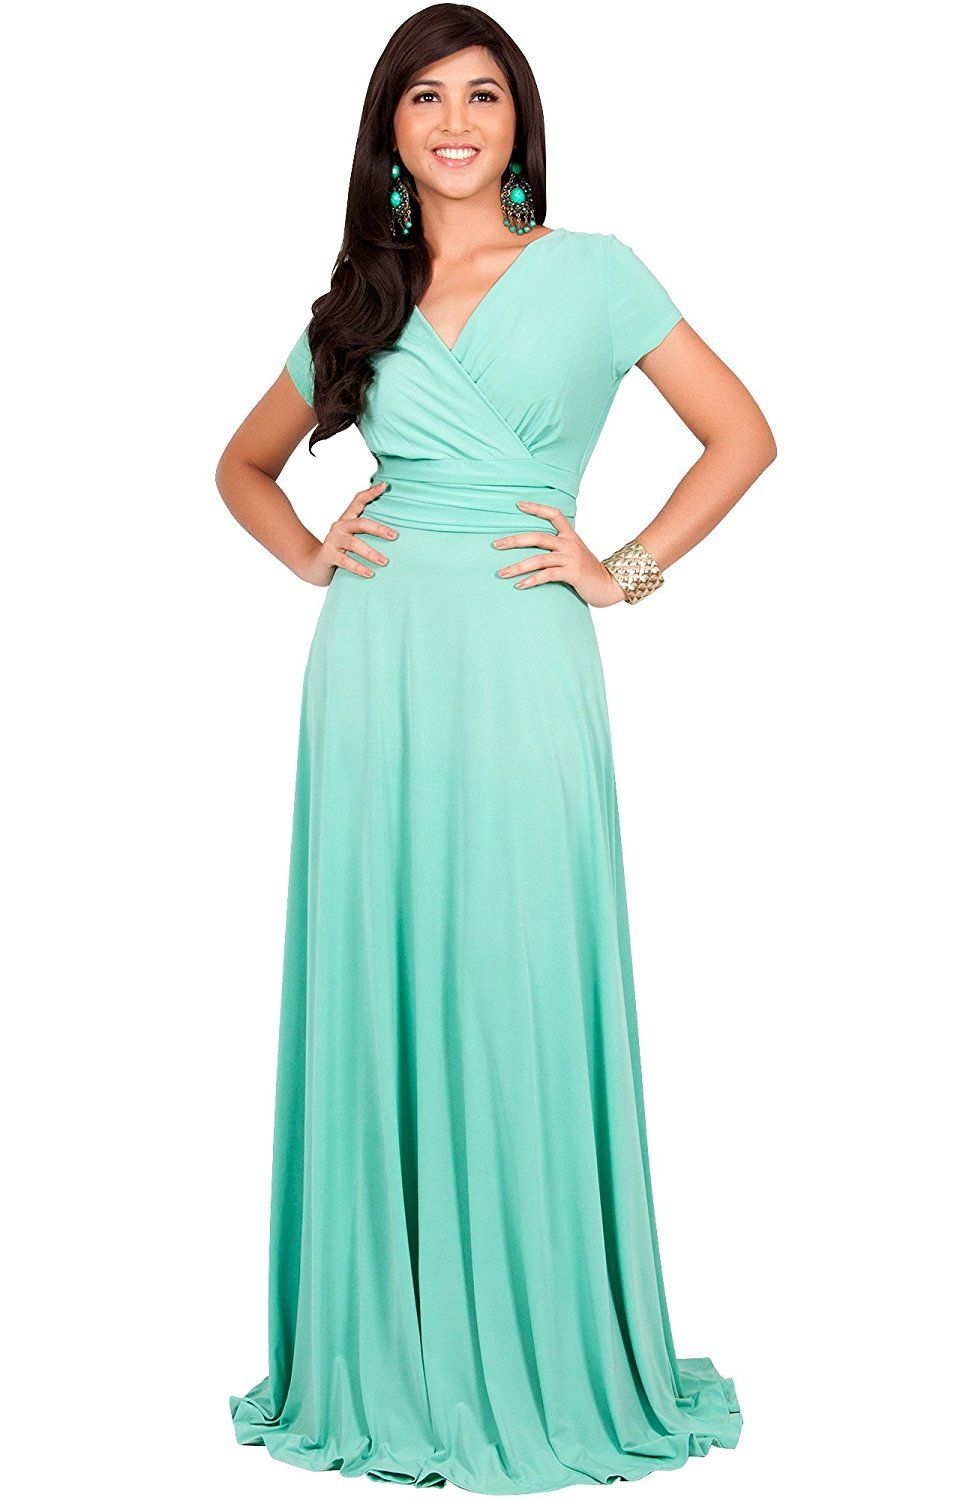 KOH KOH Womens Long Sexy Cap Short Sleeve V-neck Flowy Cocktail Gown ...